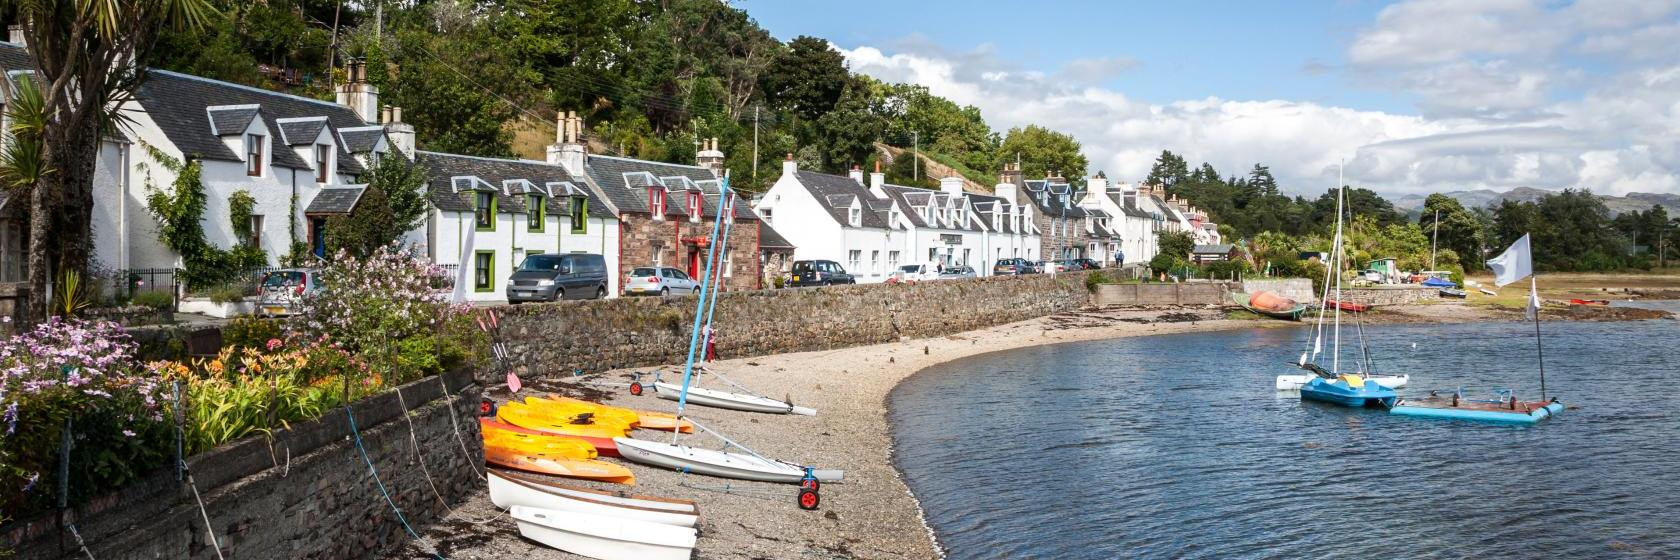 Hotels Places To Stay Near Plockton